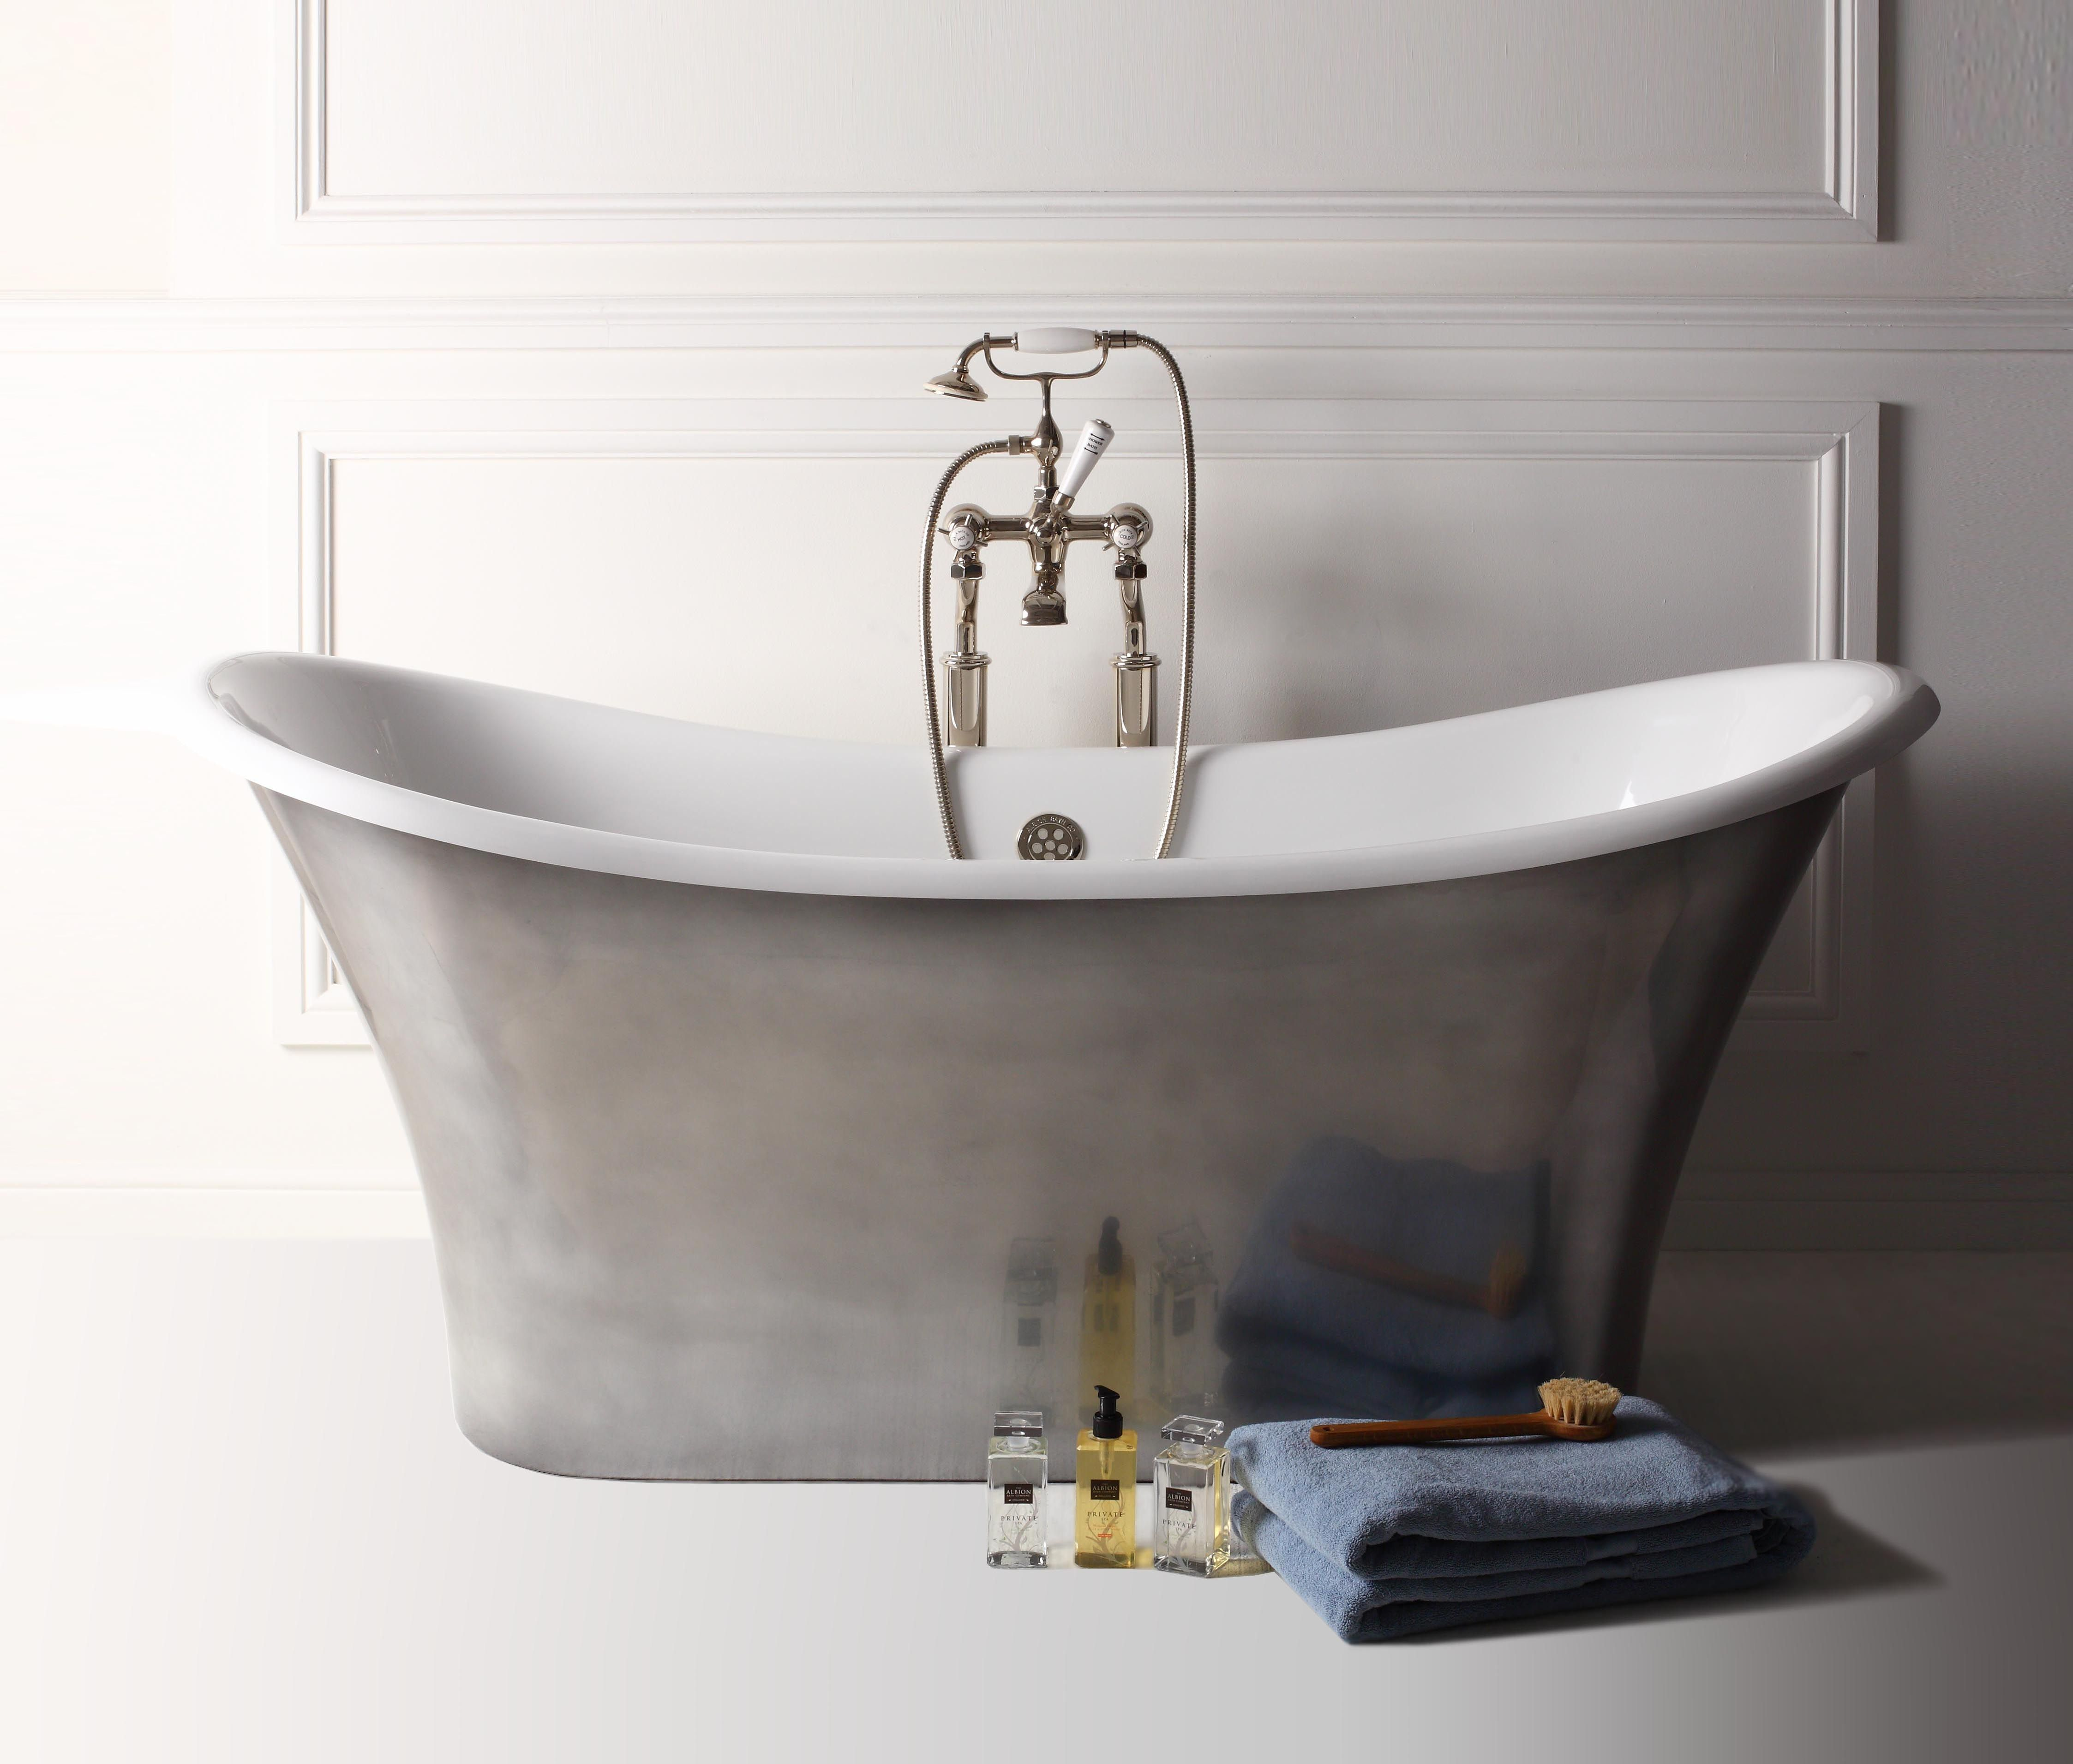 Our Apollo Bath With A Polished Pewter Finish.